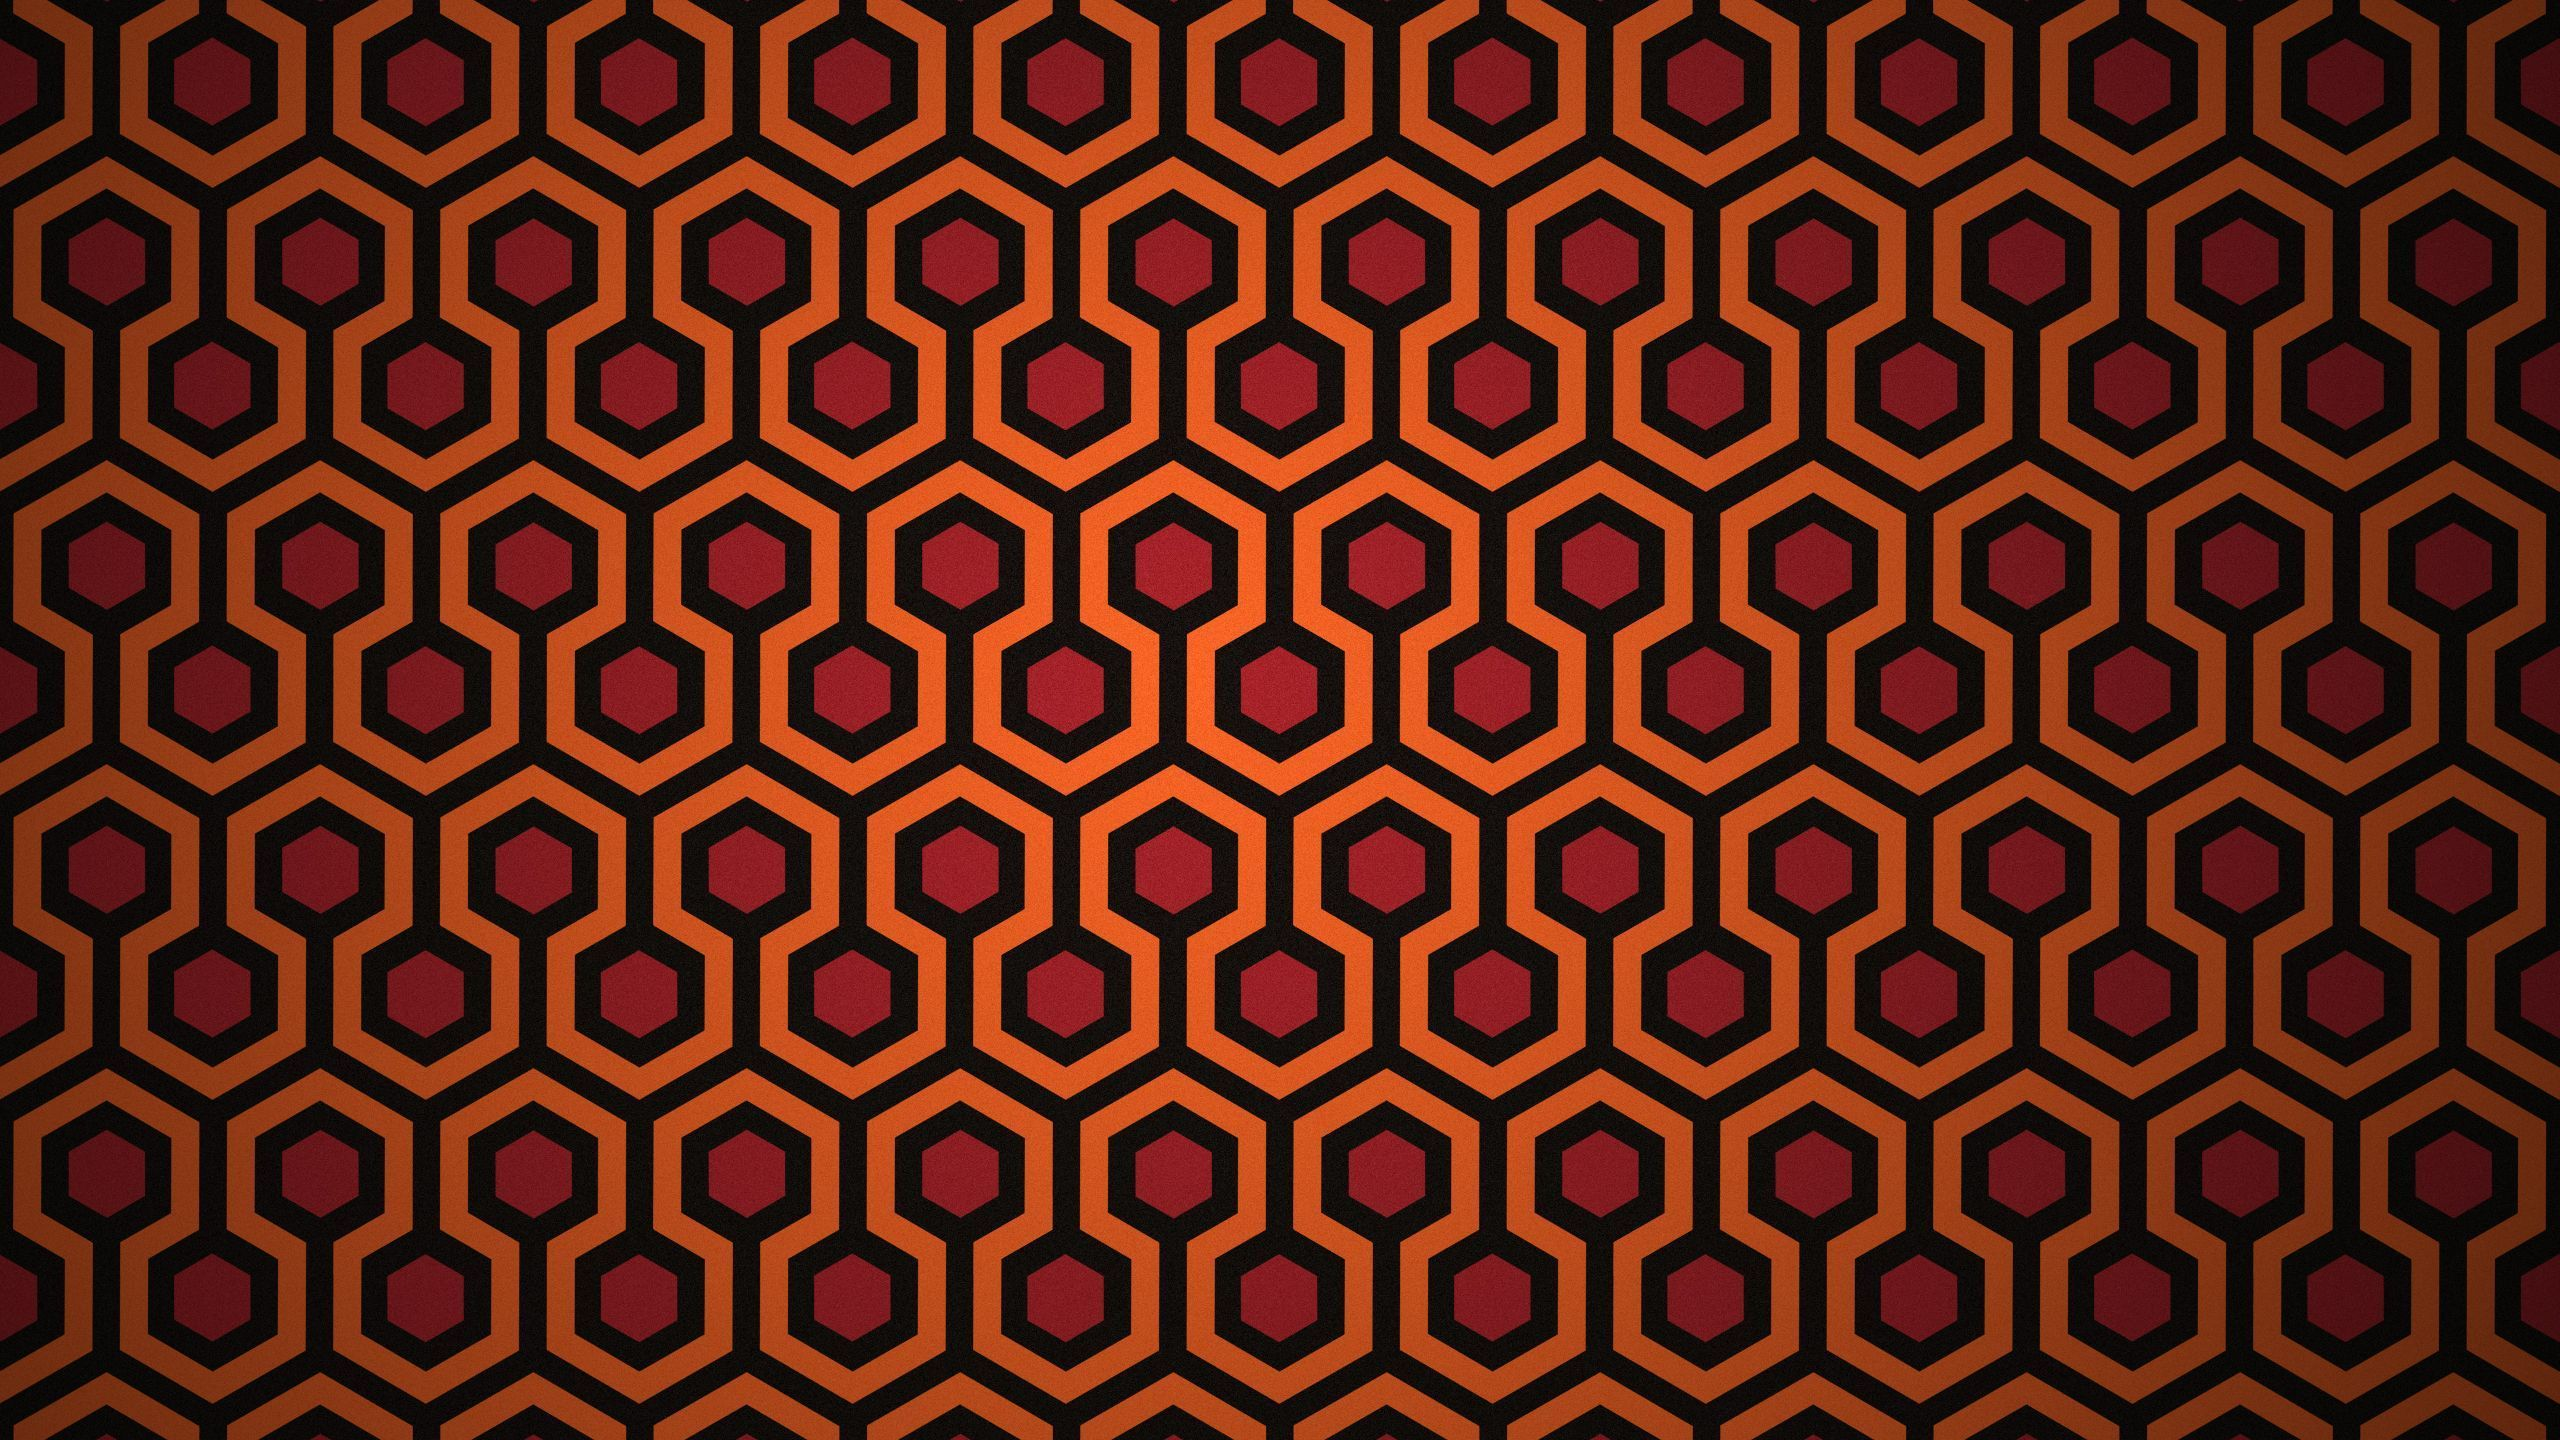 Hd wallpaper pattern - Wallpaper Hd Pattern 13 Jpg 2 560 1 440 Pixels